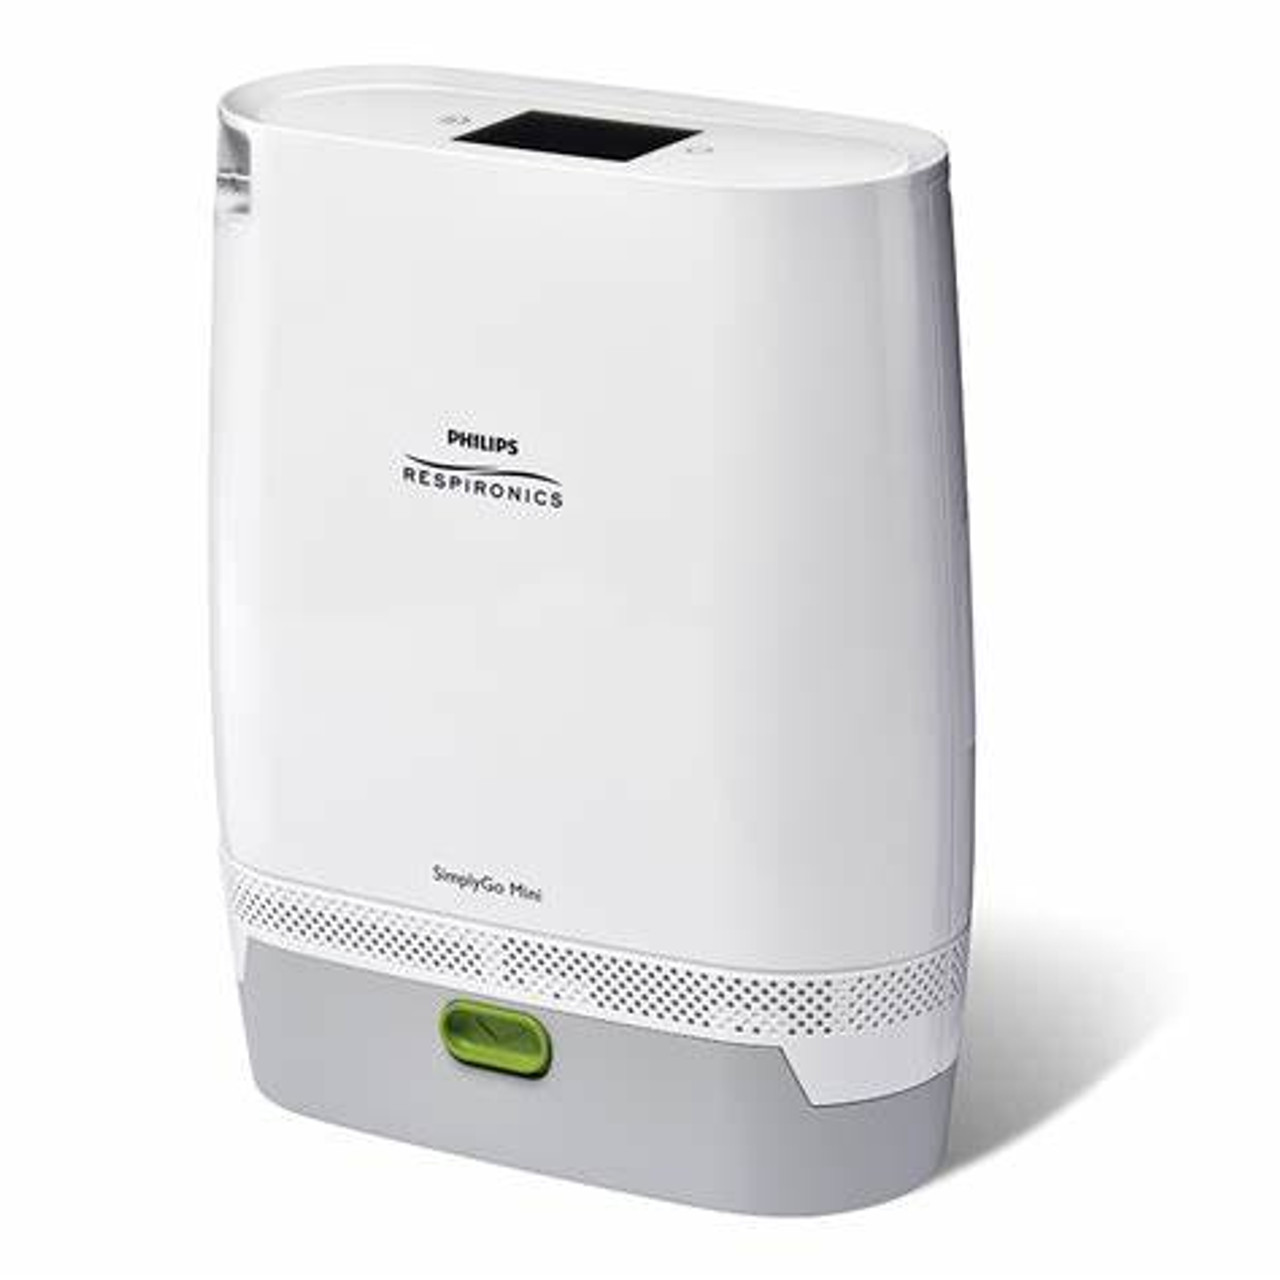 Philips Respironics SimplyGo Mini Oxygen Concentrator with Extended Battery